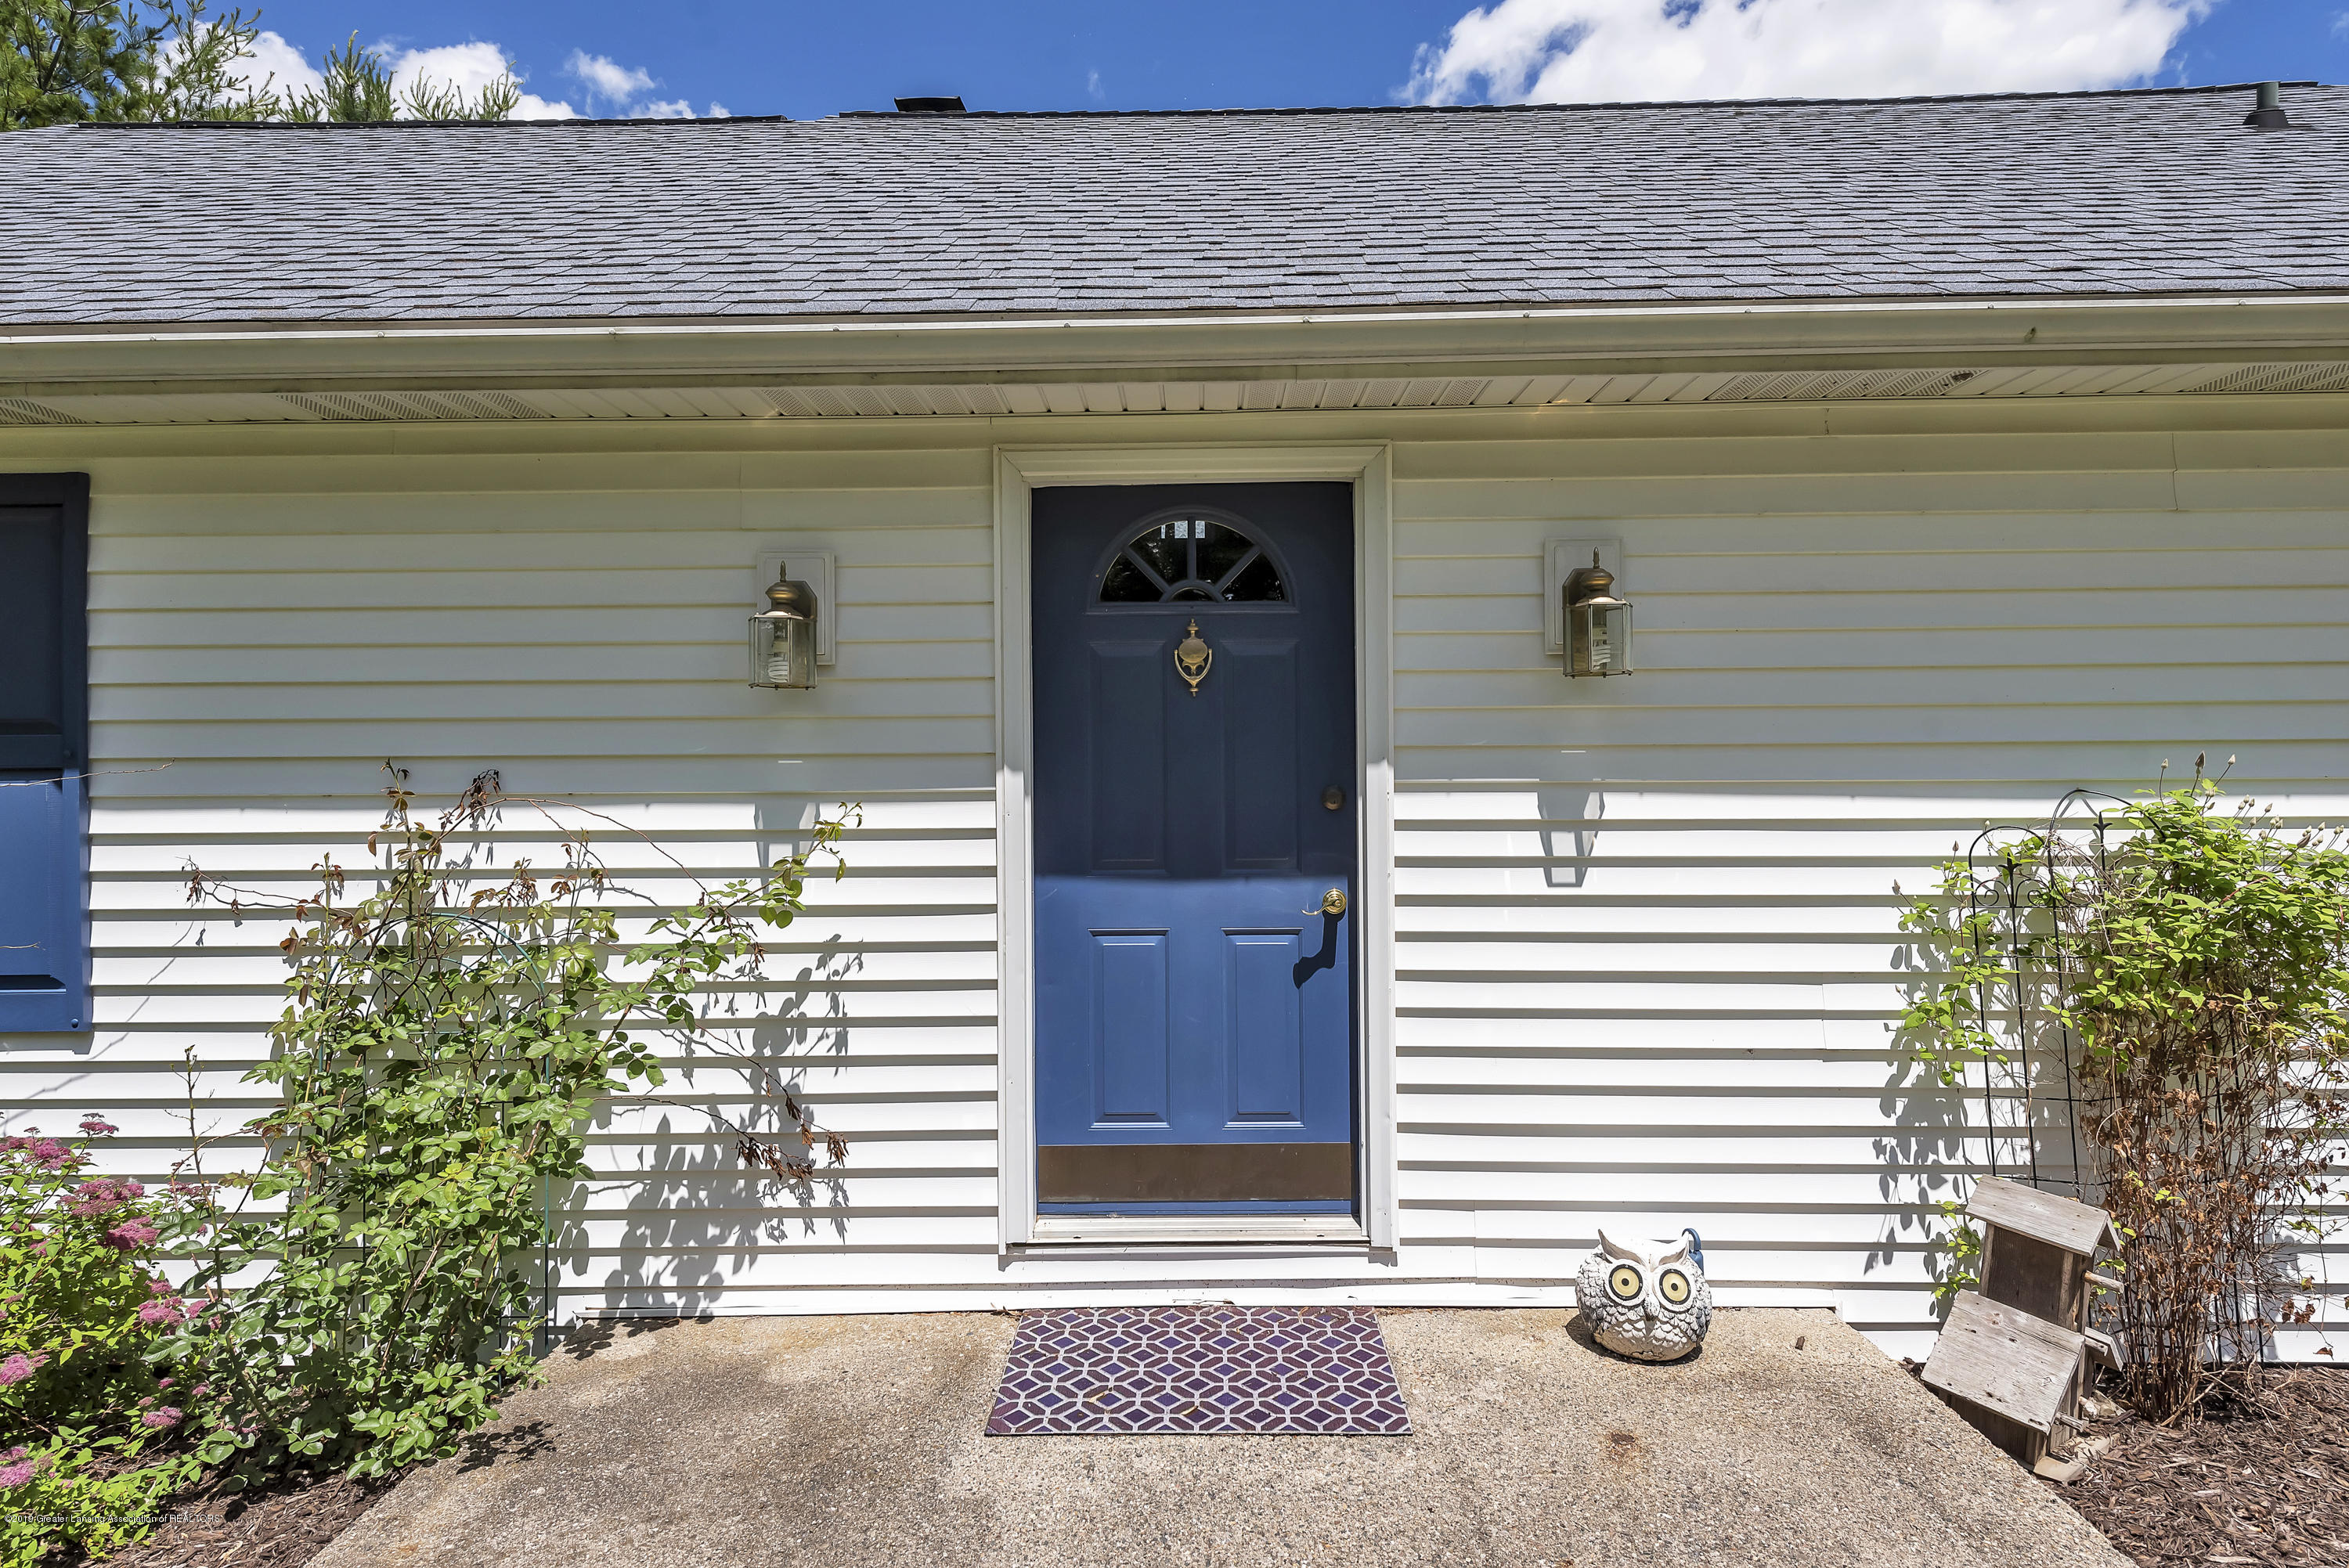 699 Sherwood Rd - 699-E-Sherwood-Rd-Williamston-windowstil - 5